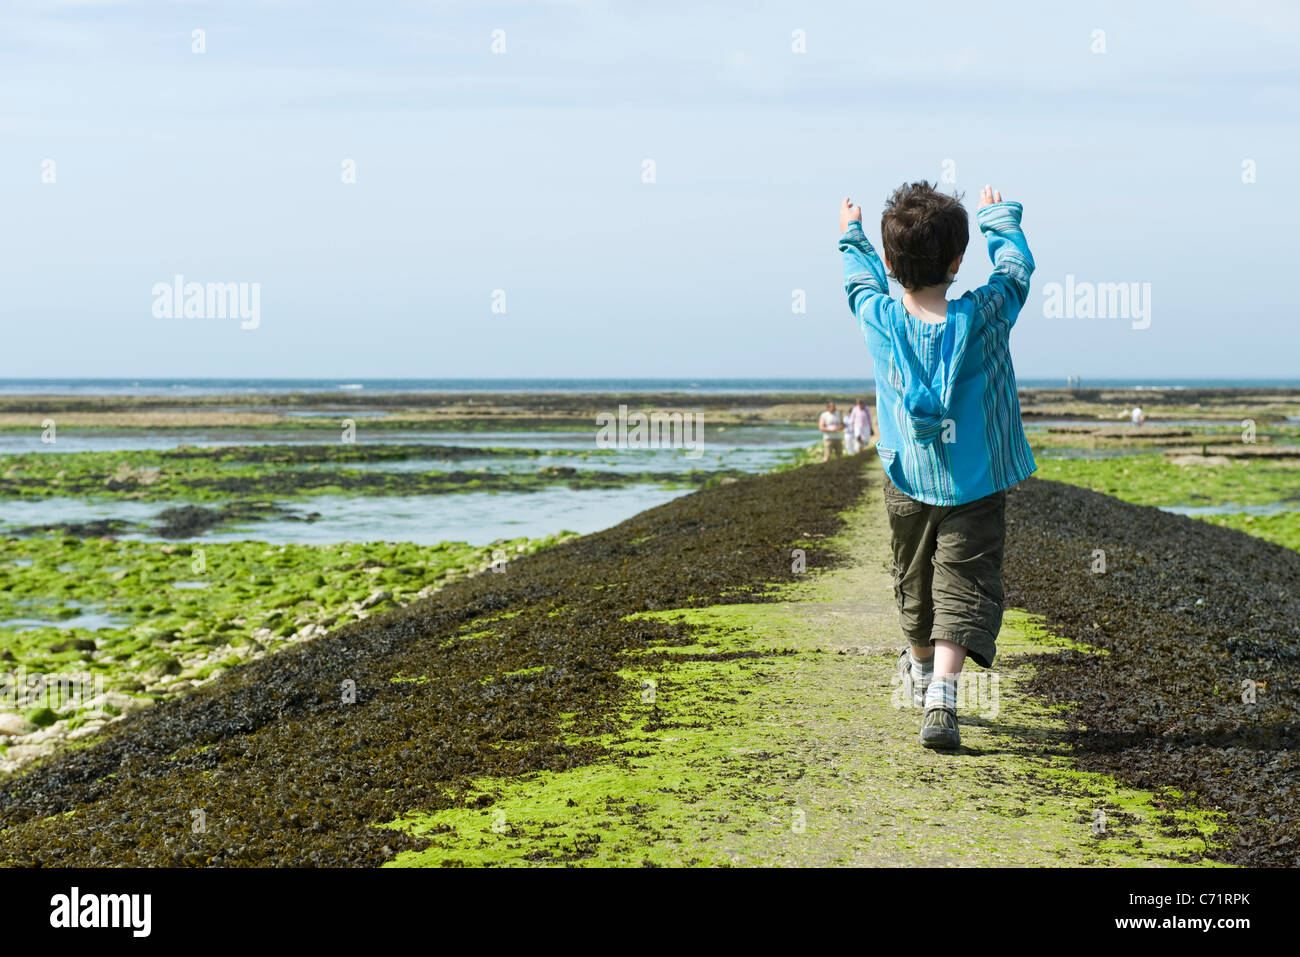 Boy walking on breakwater, Ile de RŽ, Charente-Maritime, France - Stock Image